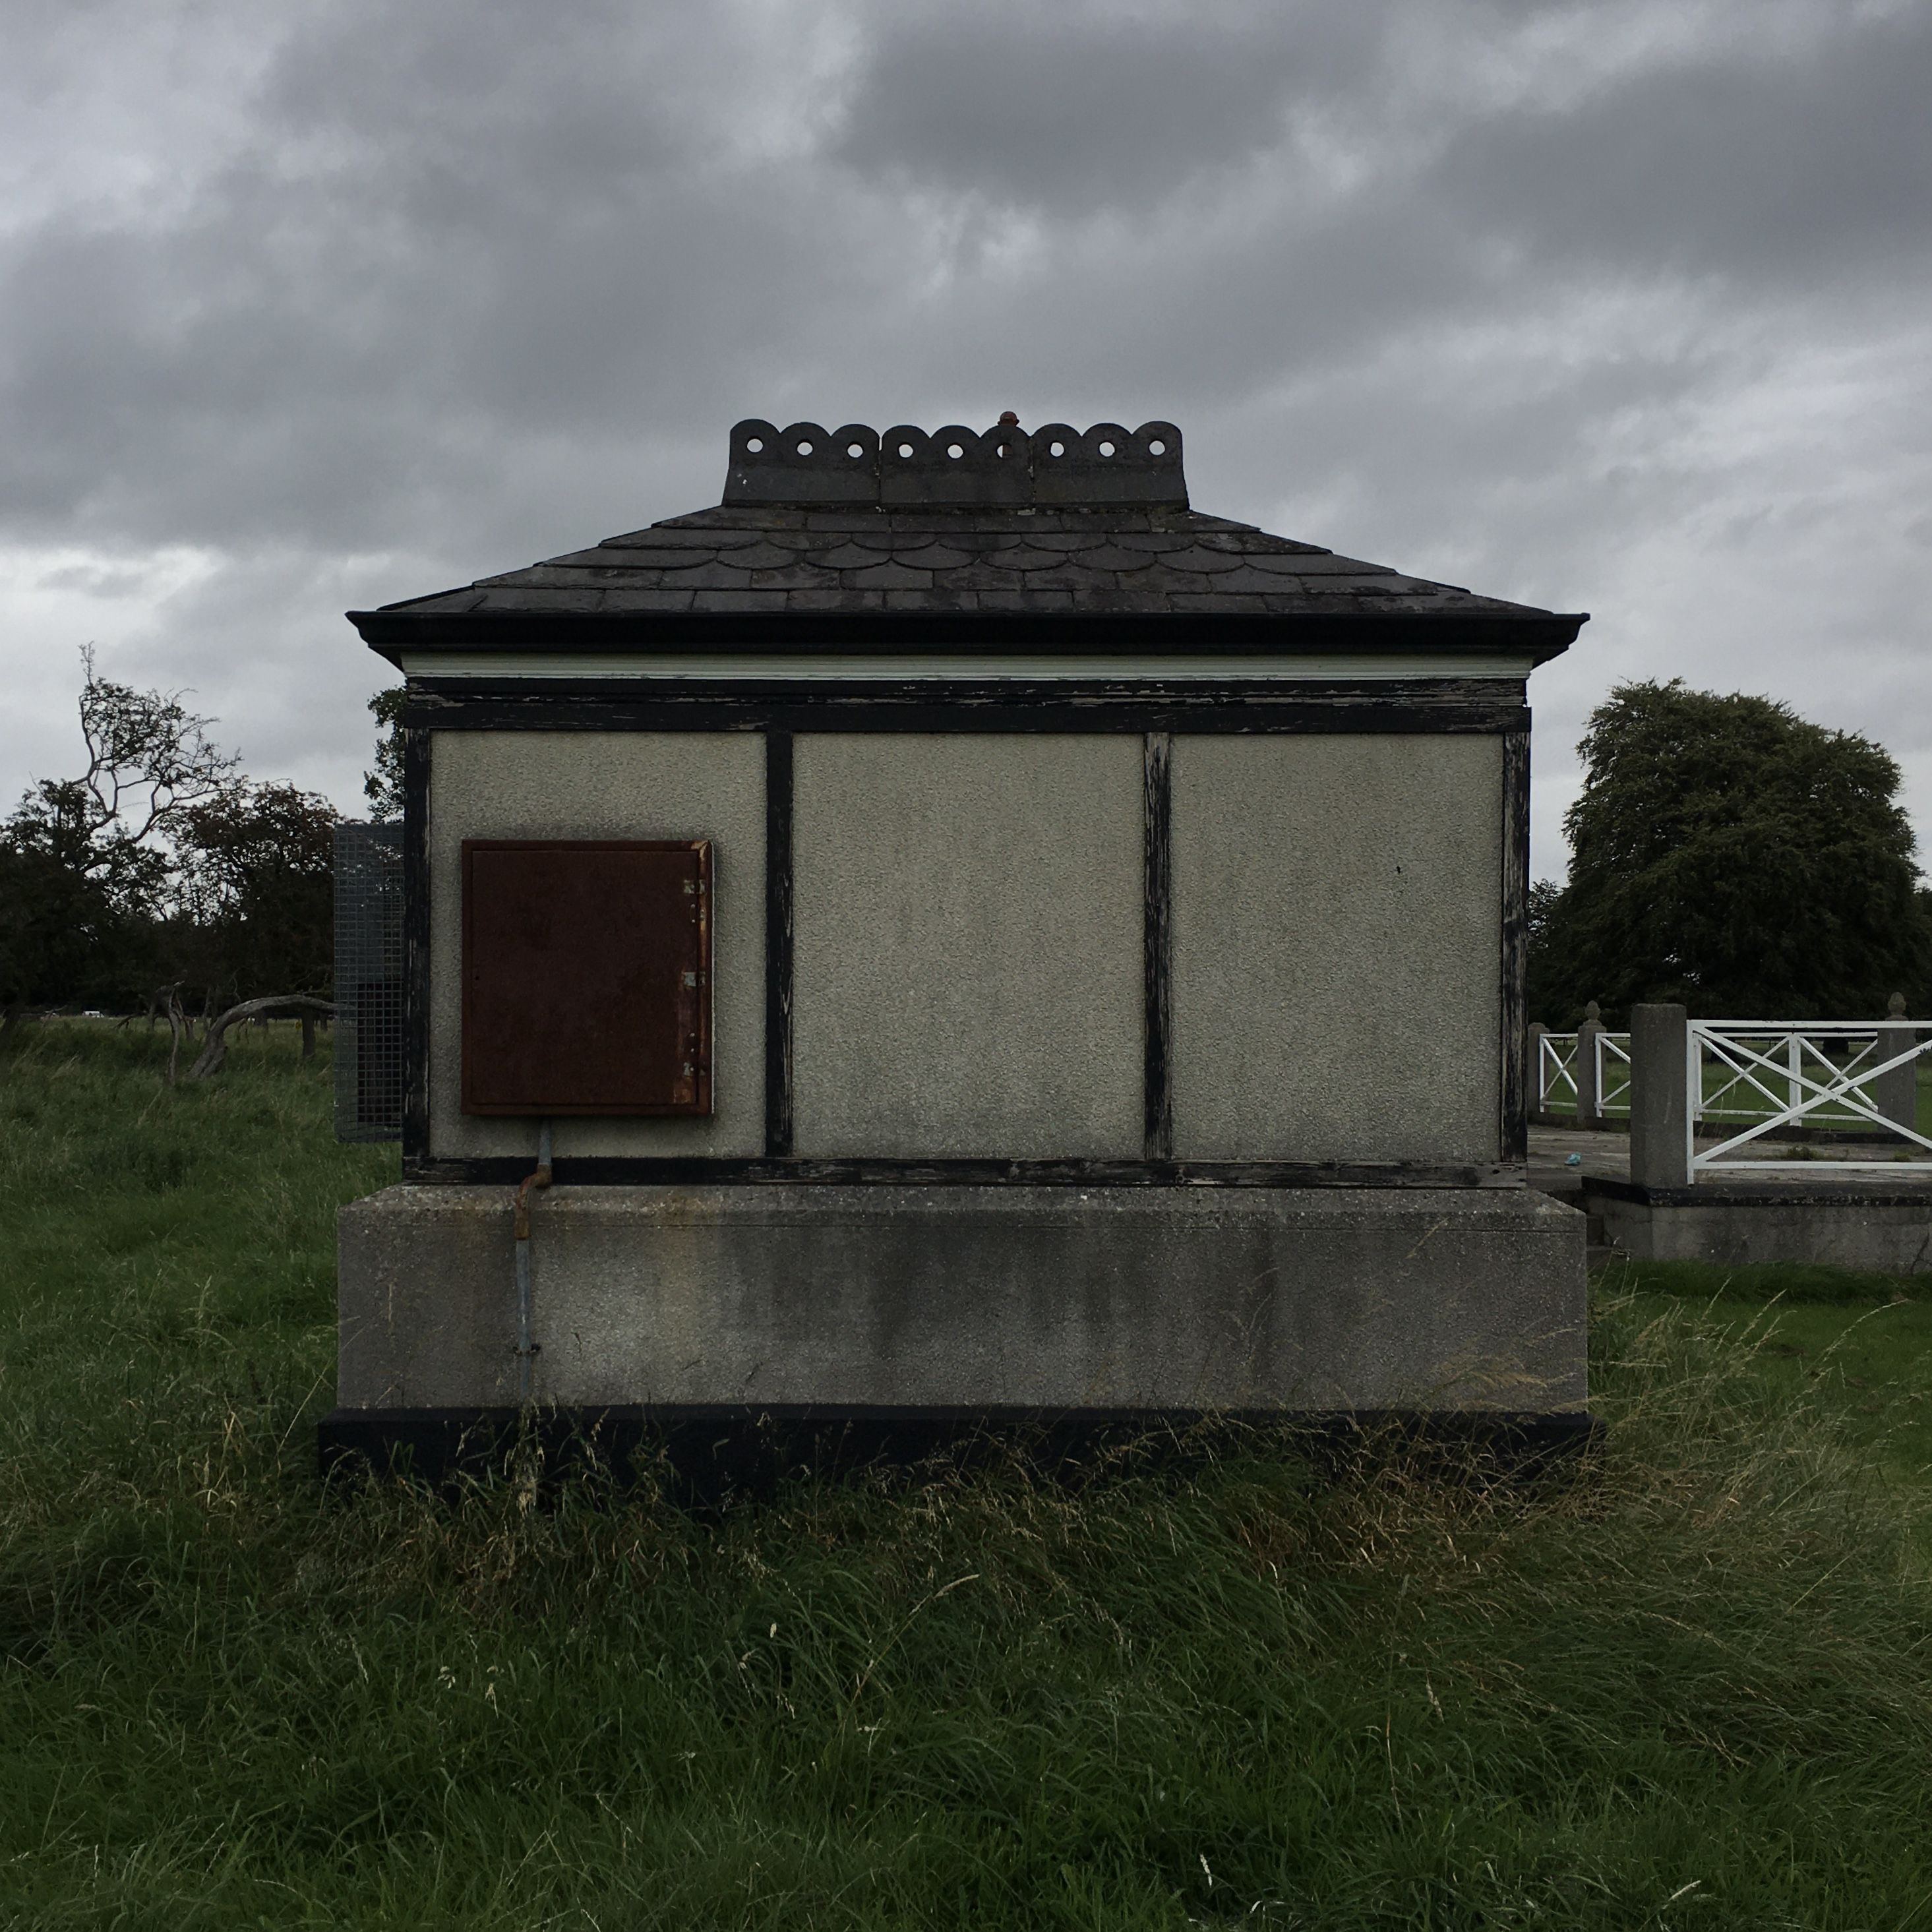 A very norse looking little building in Phoenix park